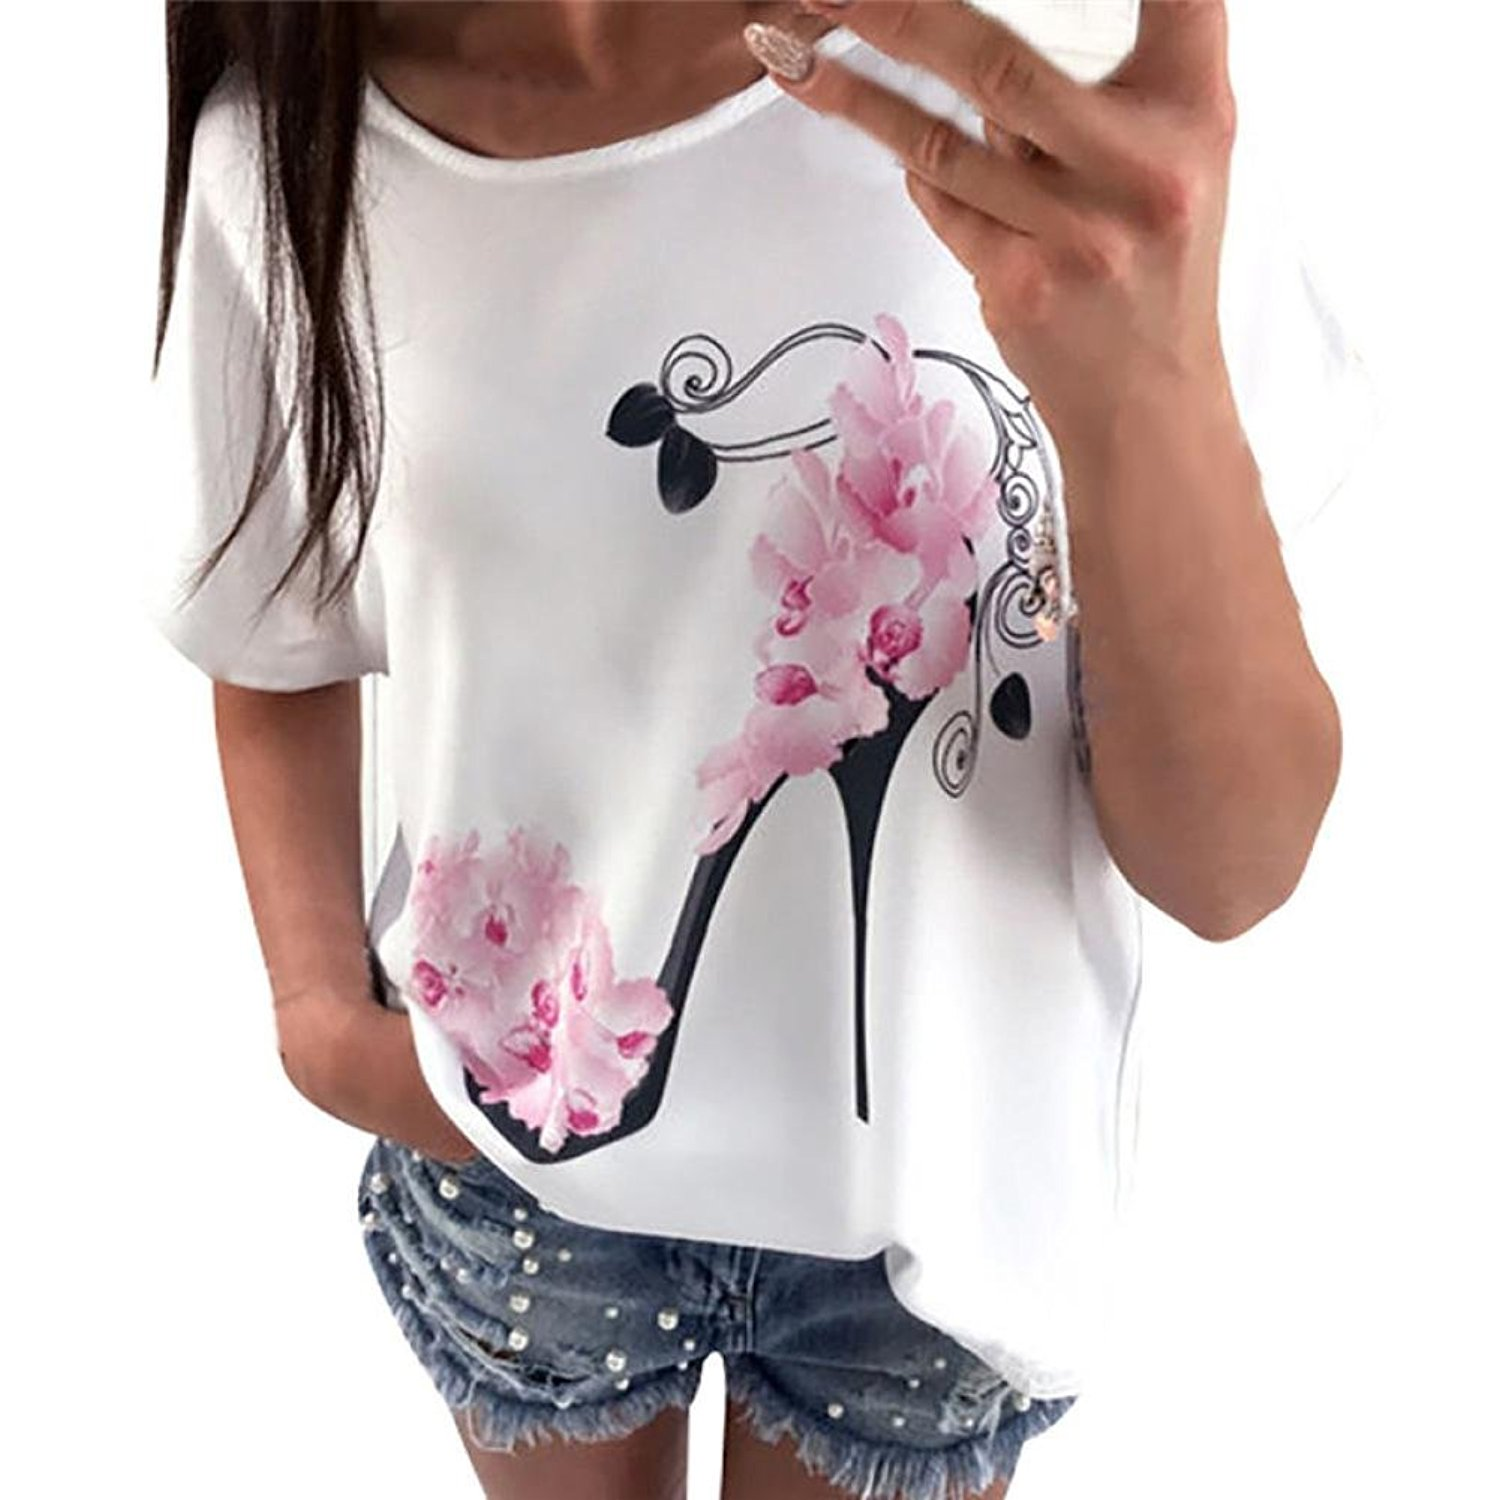 e12220460 Get Quotations · Keepfit High Heels Printed Blouse, Casual Loose Short  Sleeve Blouse Floral Printing Beach Tops for